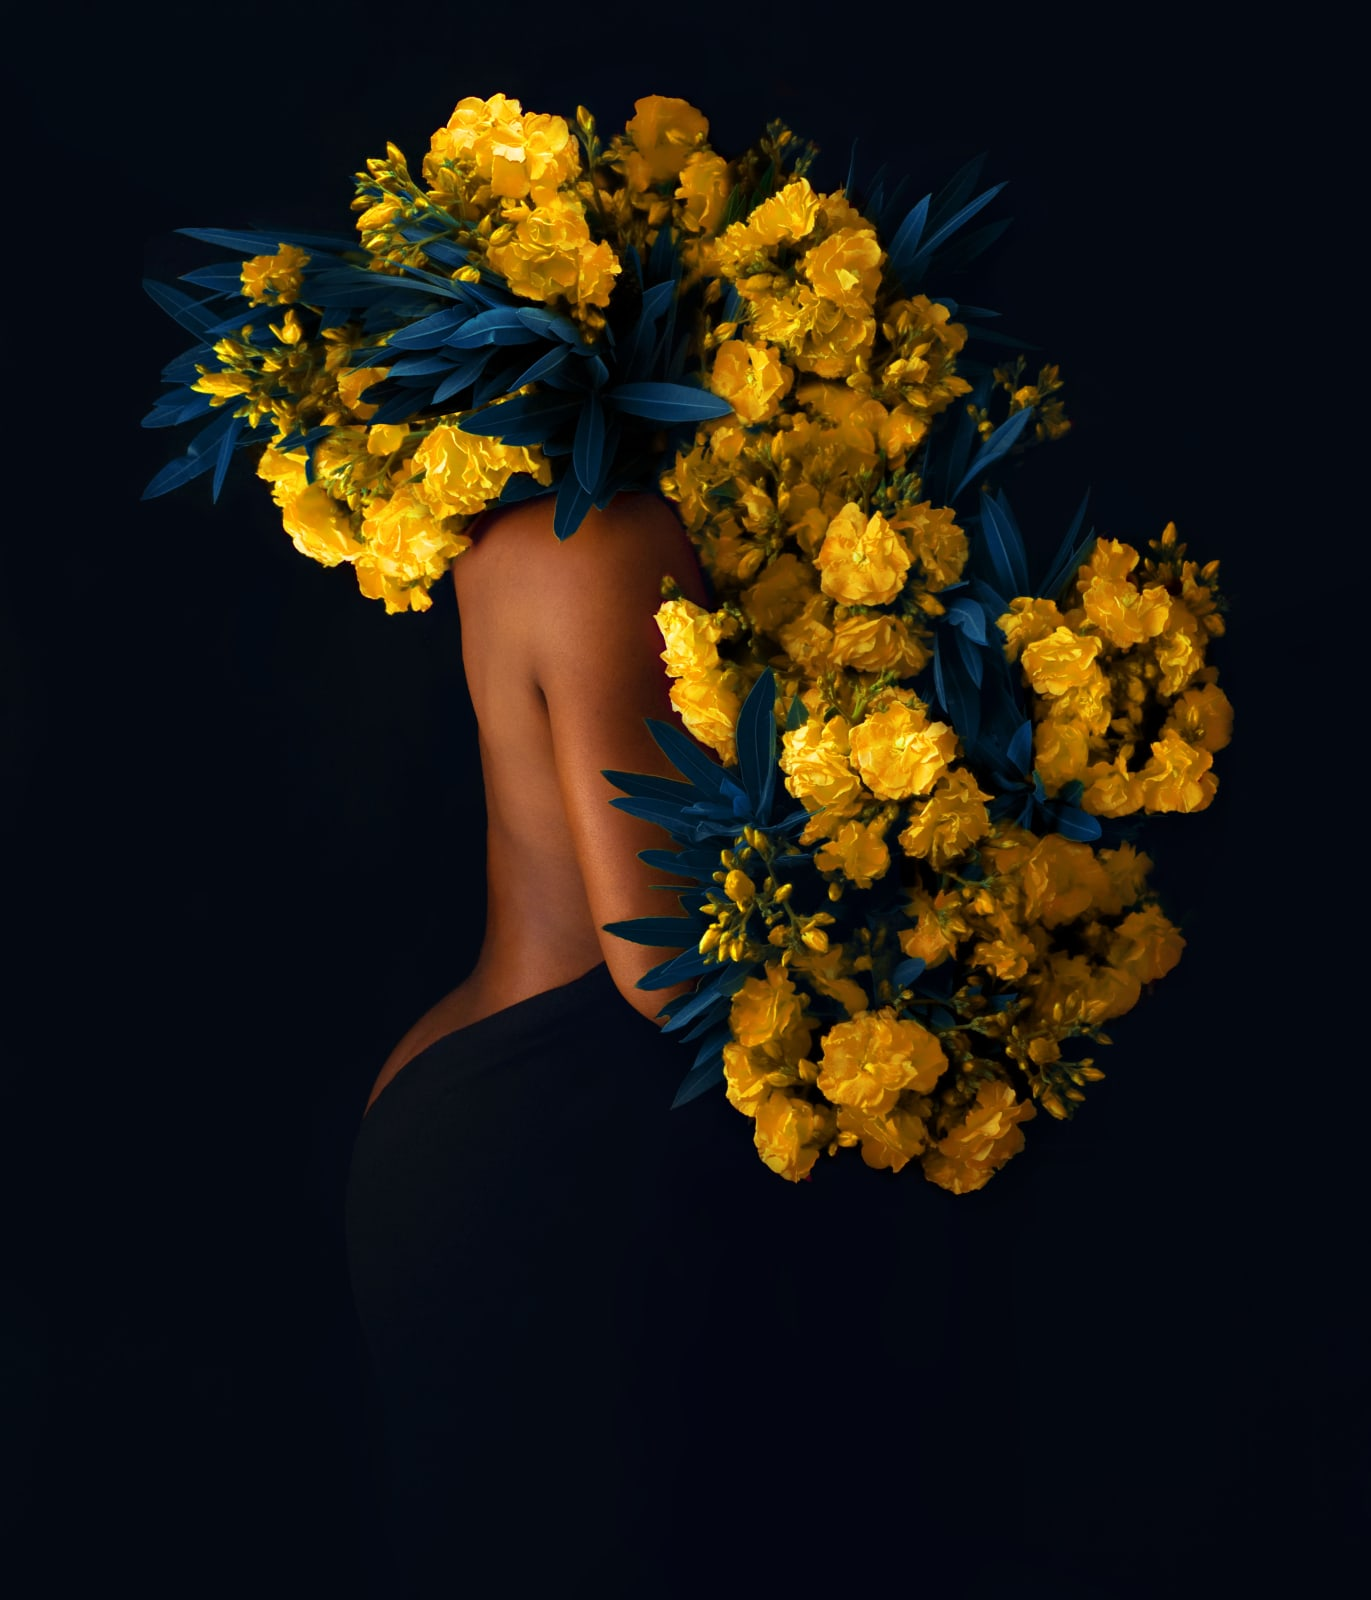 Fares Micue. Beauty in the Dark, 2020. Printed on high-quality fine art Canson paper. 70.1 × 59.9 cm. Edition of 20.